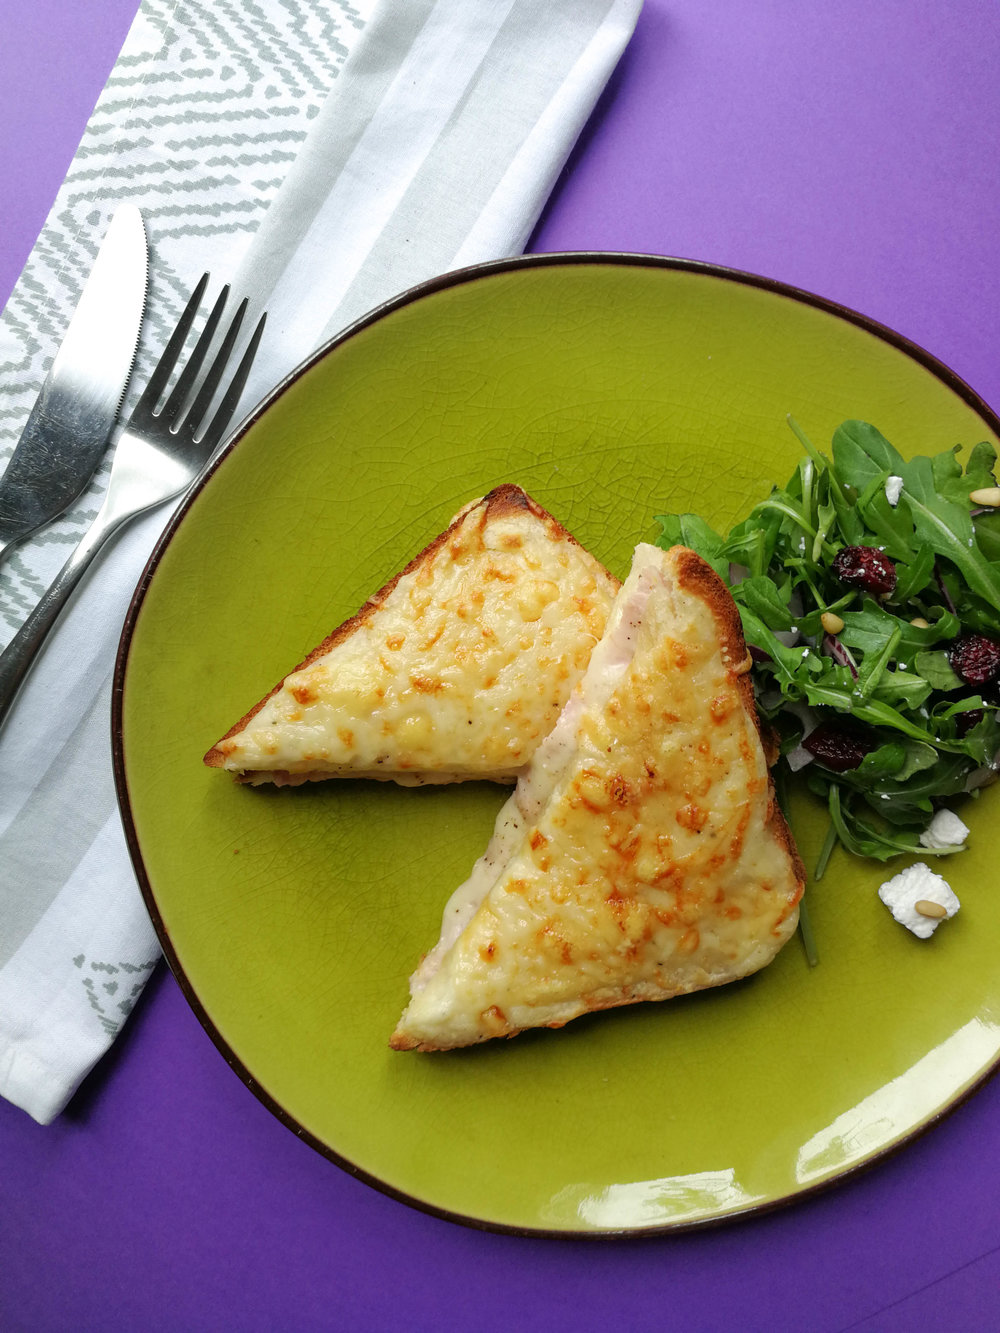 Croque monsieur literally means 'mr crunch', while croque madame means - you guessed it - 'mrs crunch'.